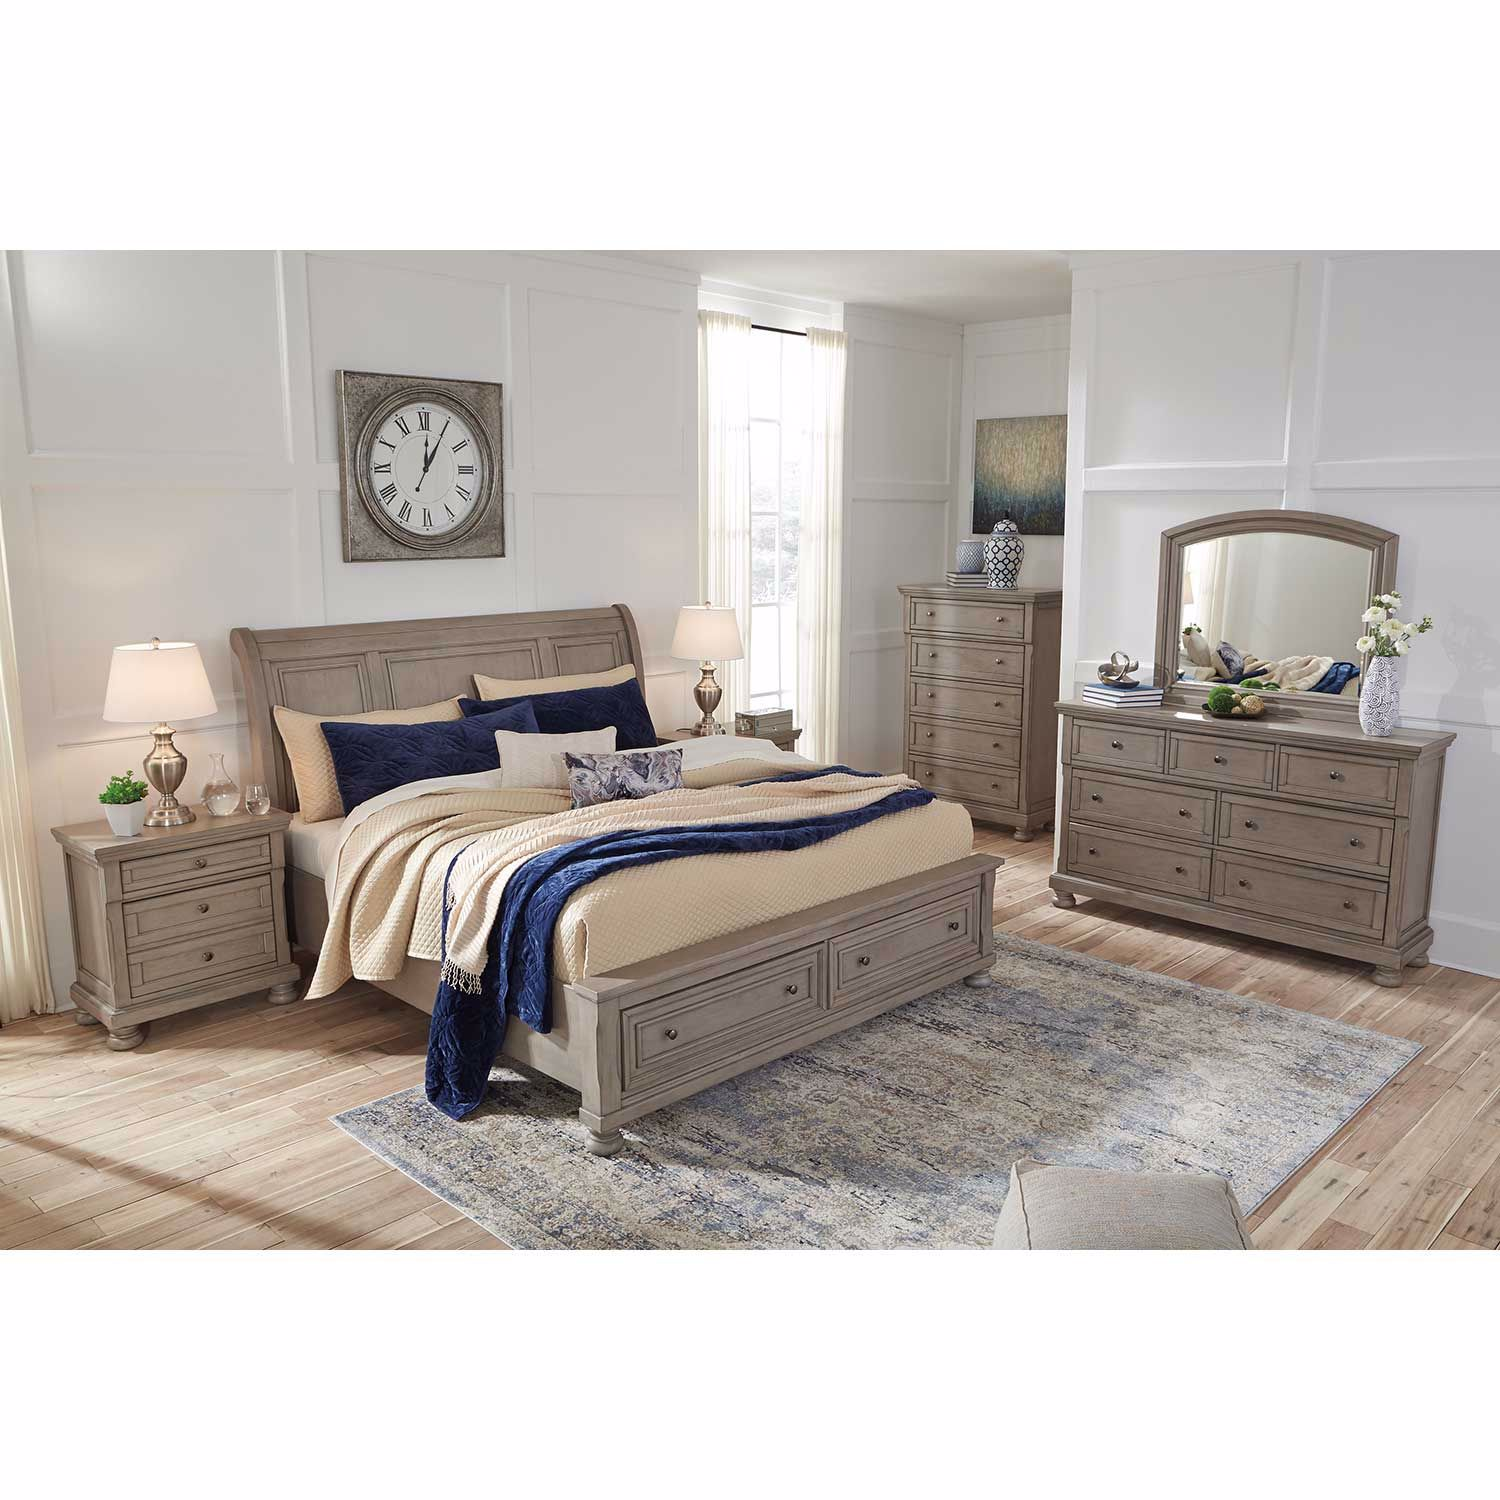 Picture of Lettner queen Storage Bed